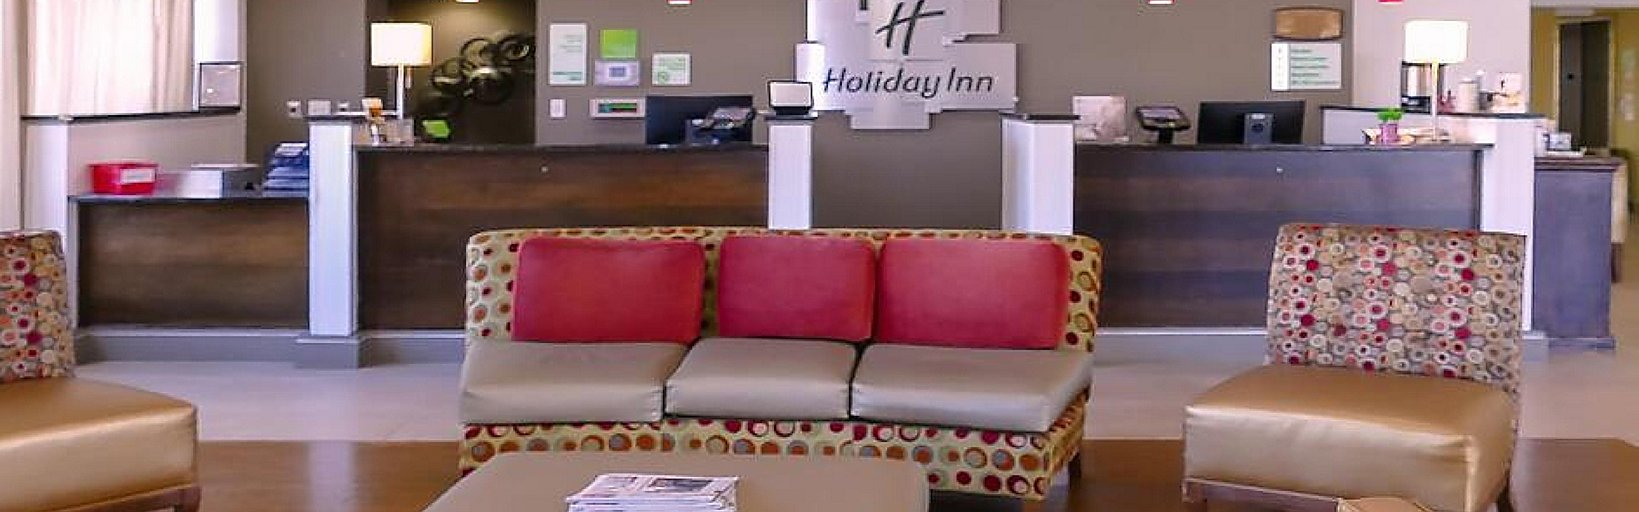 Holiday Inn Fort Myers Downtown Area